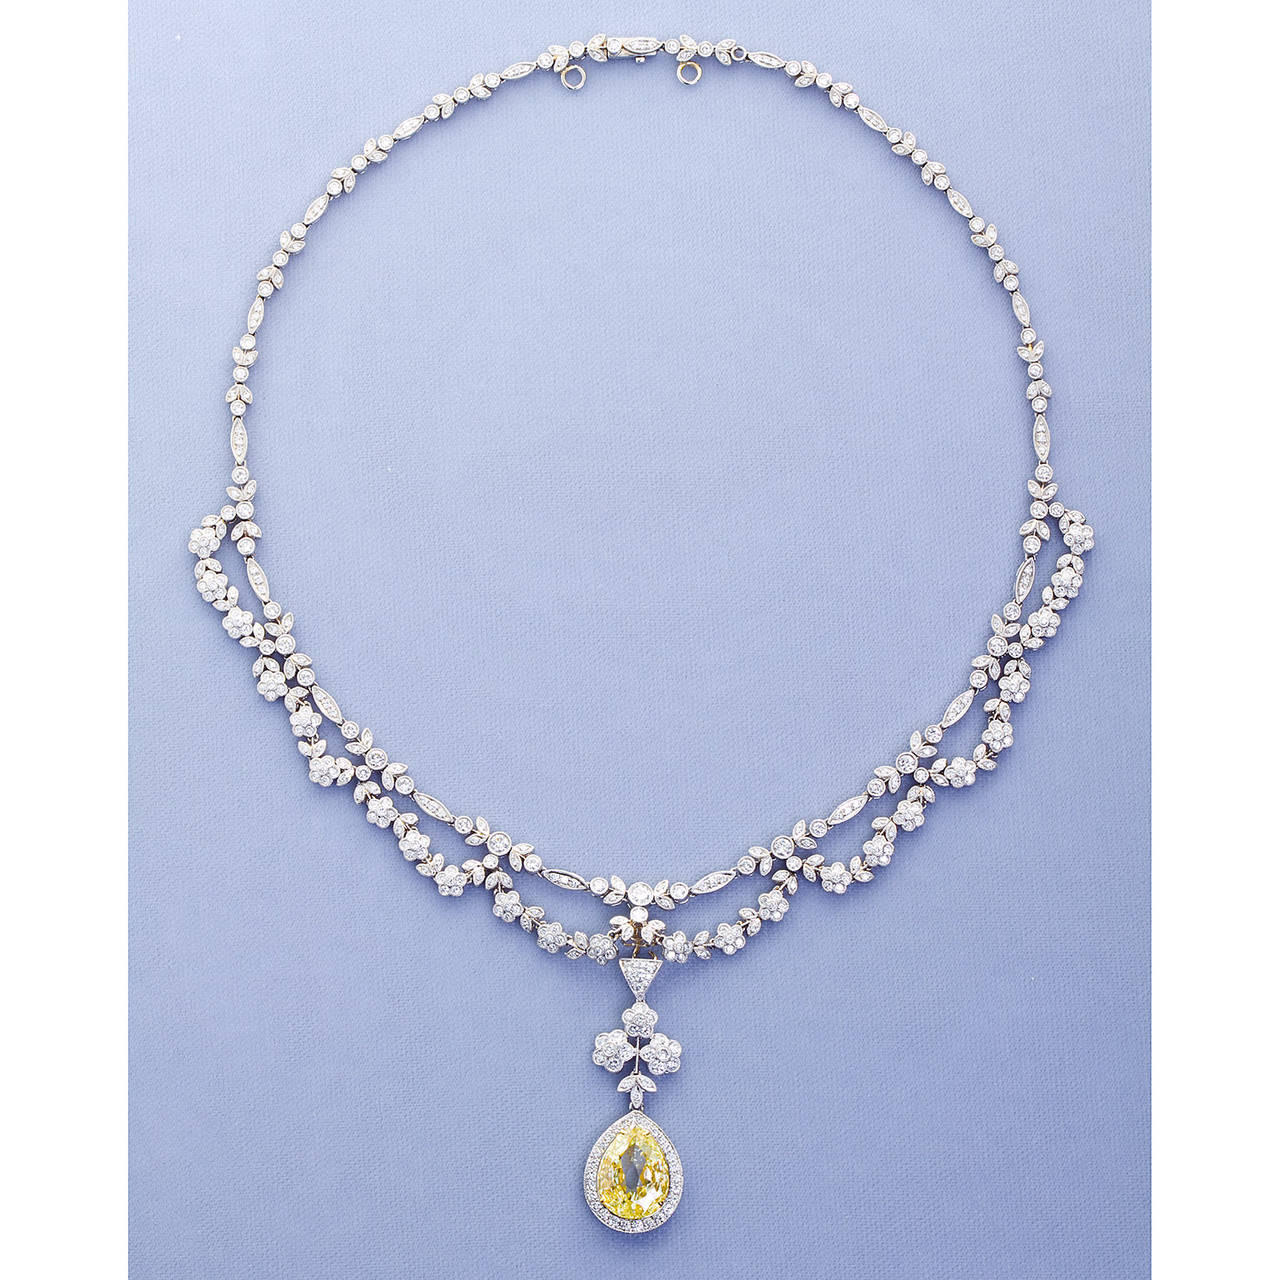 A diamond in platinum festoon style drape necklace circa 1920s with a modified pear shape natural fancy yellow 5.06 carat diamond pendant. Necklace contains approx. 6.50 carat total diamonds. 5.06 carat pear shape accompanied by GIA report stating